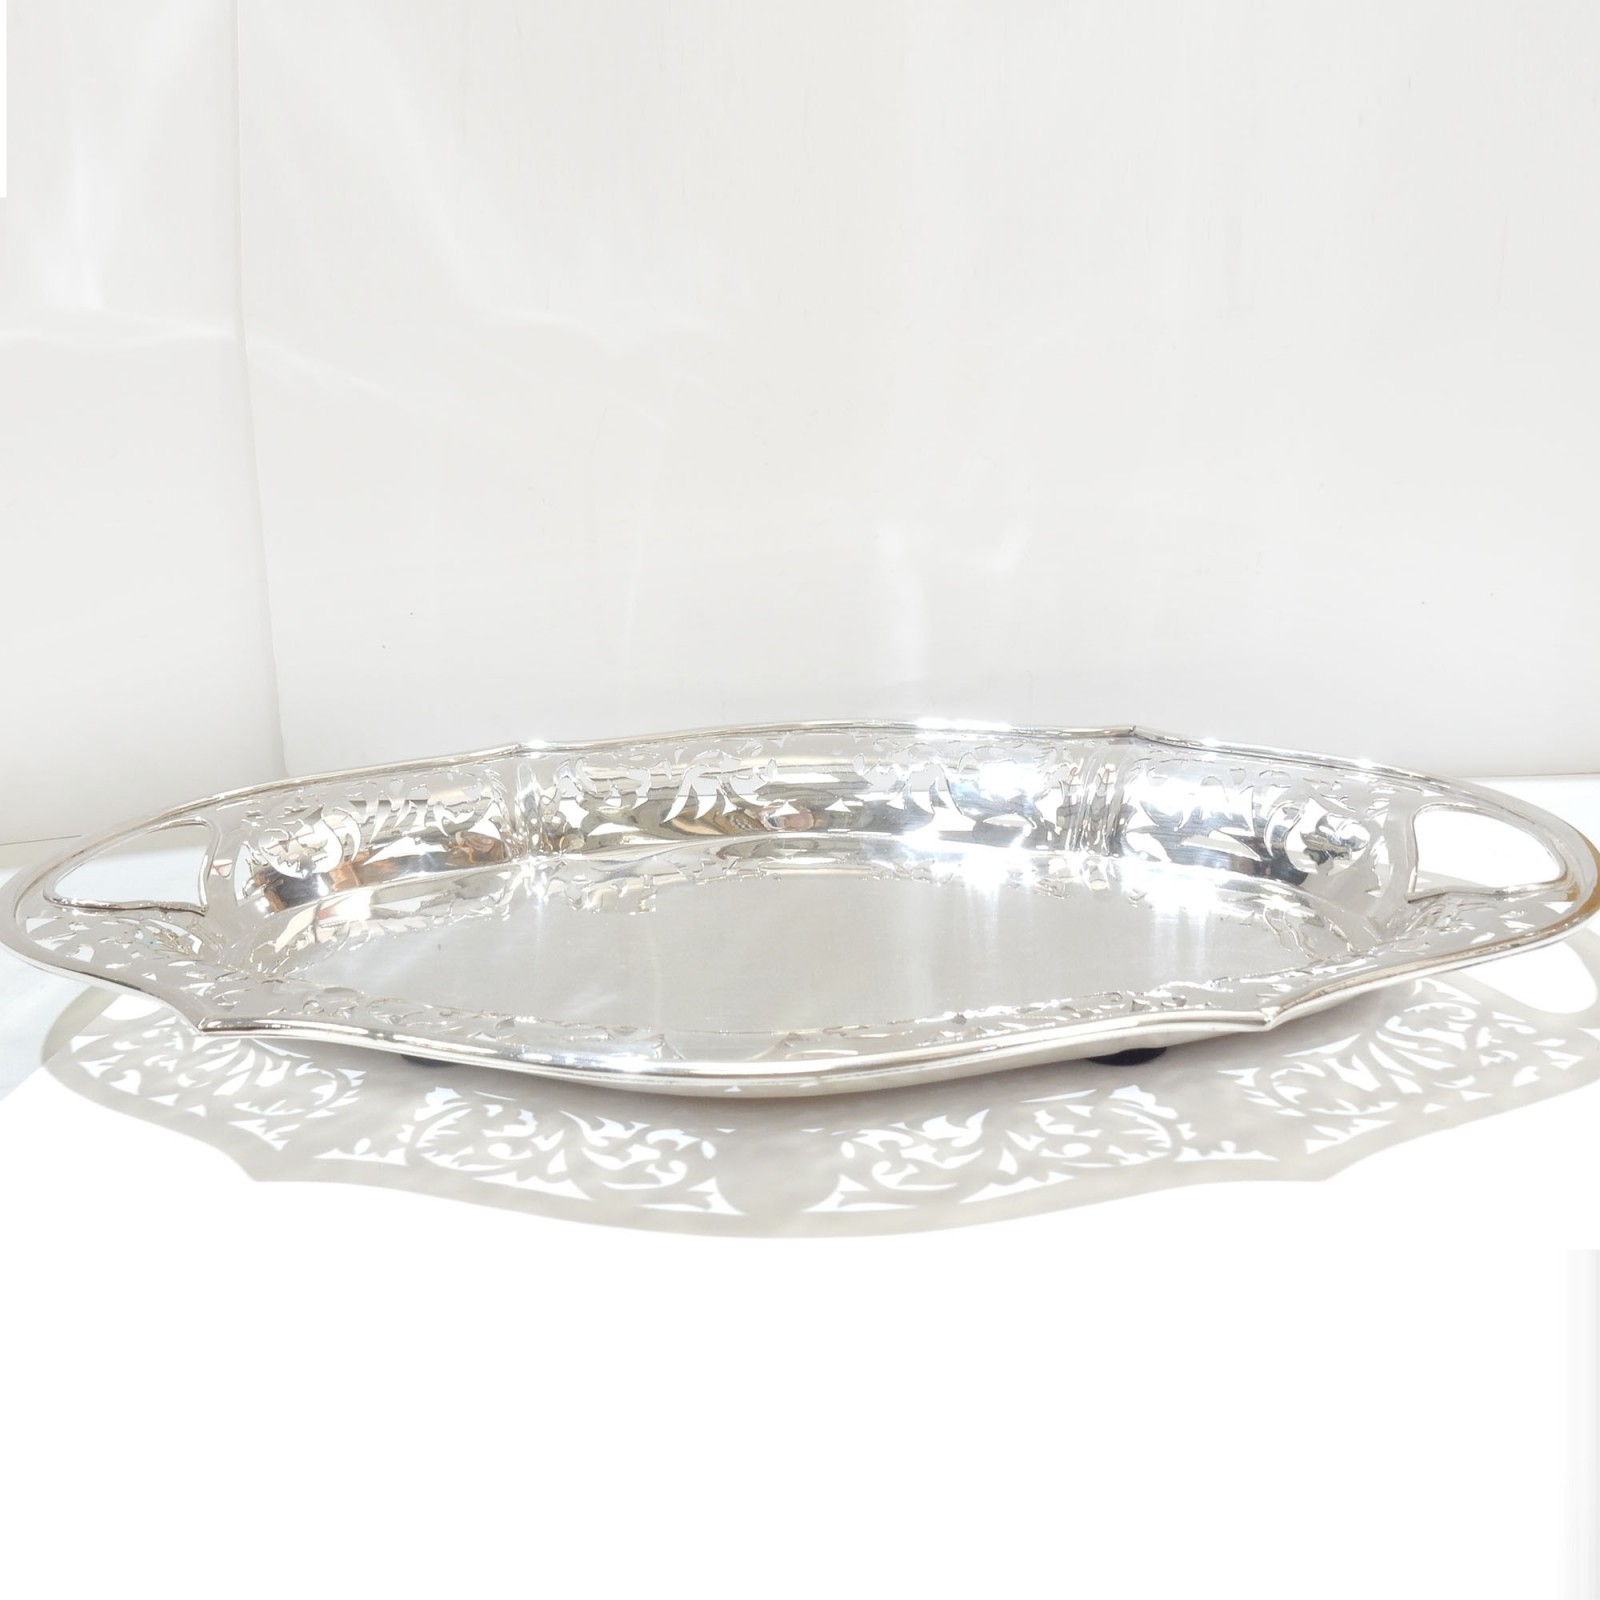 Photo of Sheffield Silverplate Pierced Butlers Tray Salver Gallery Tray